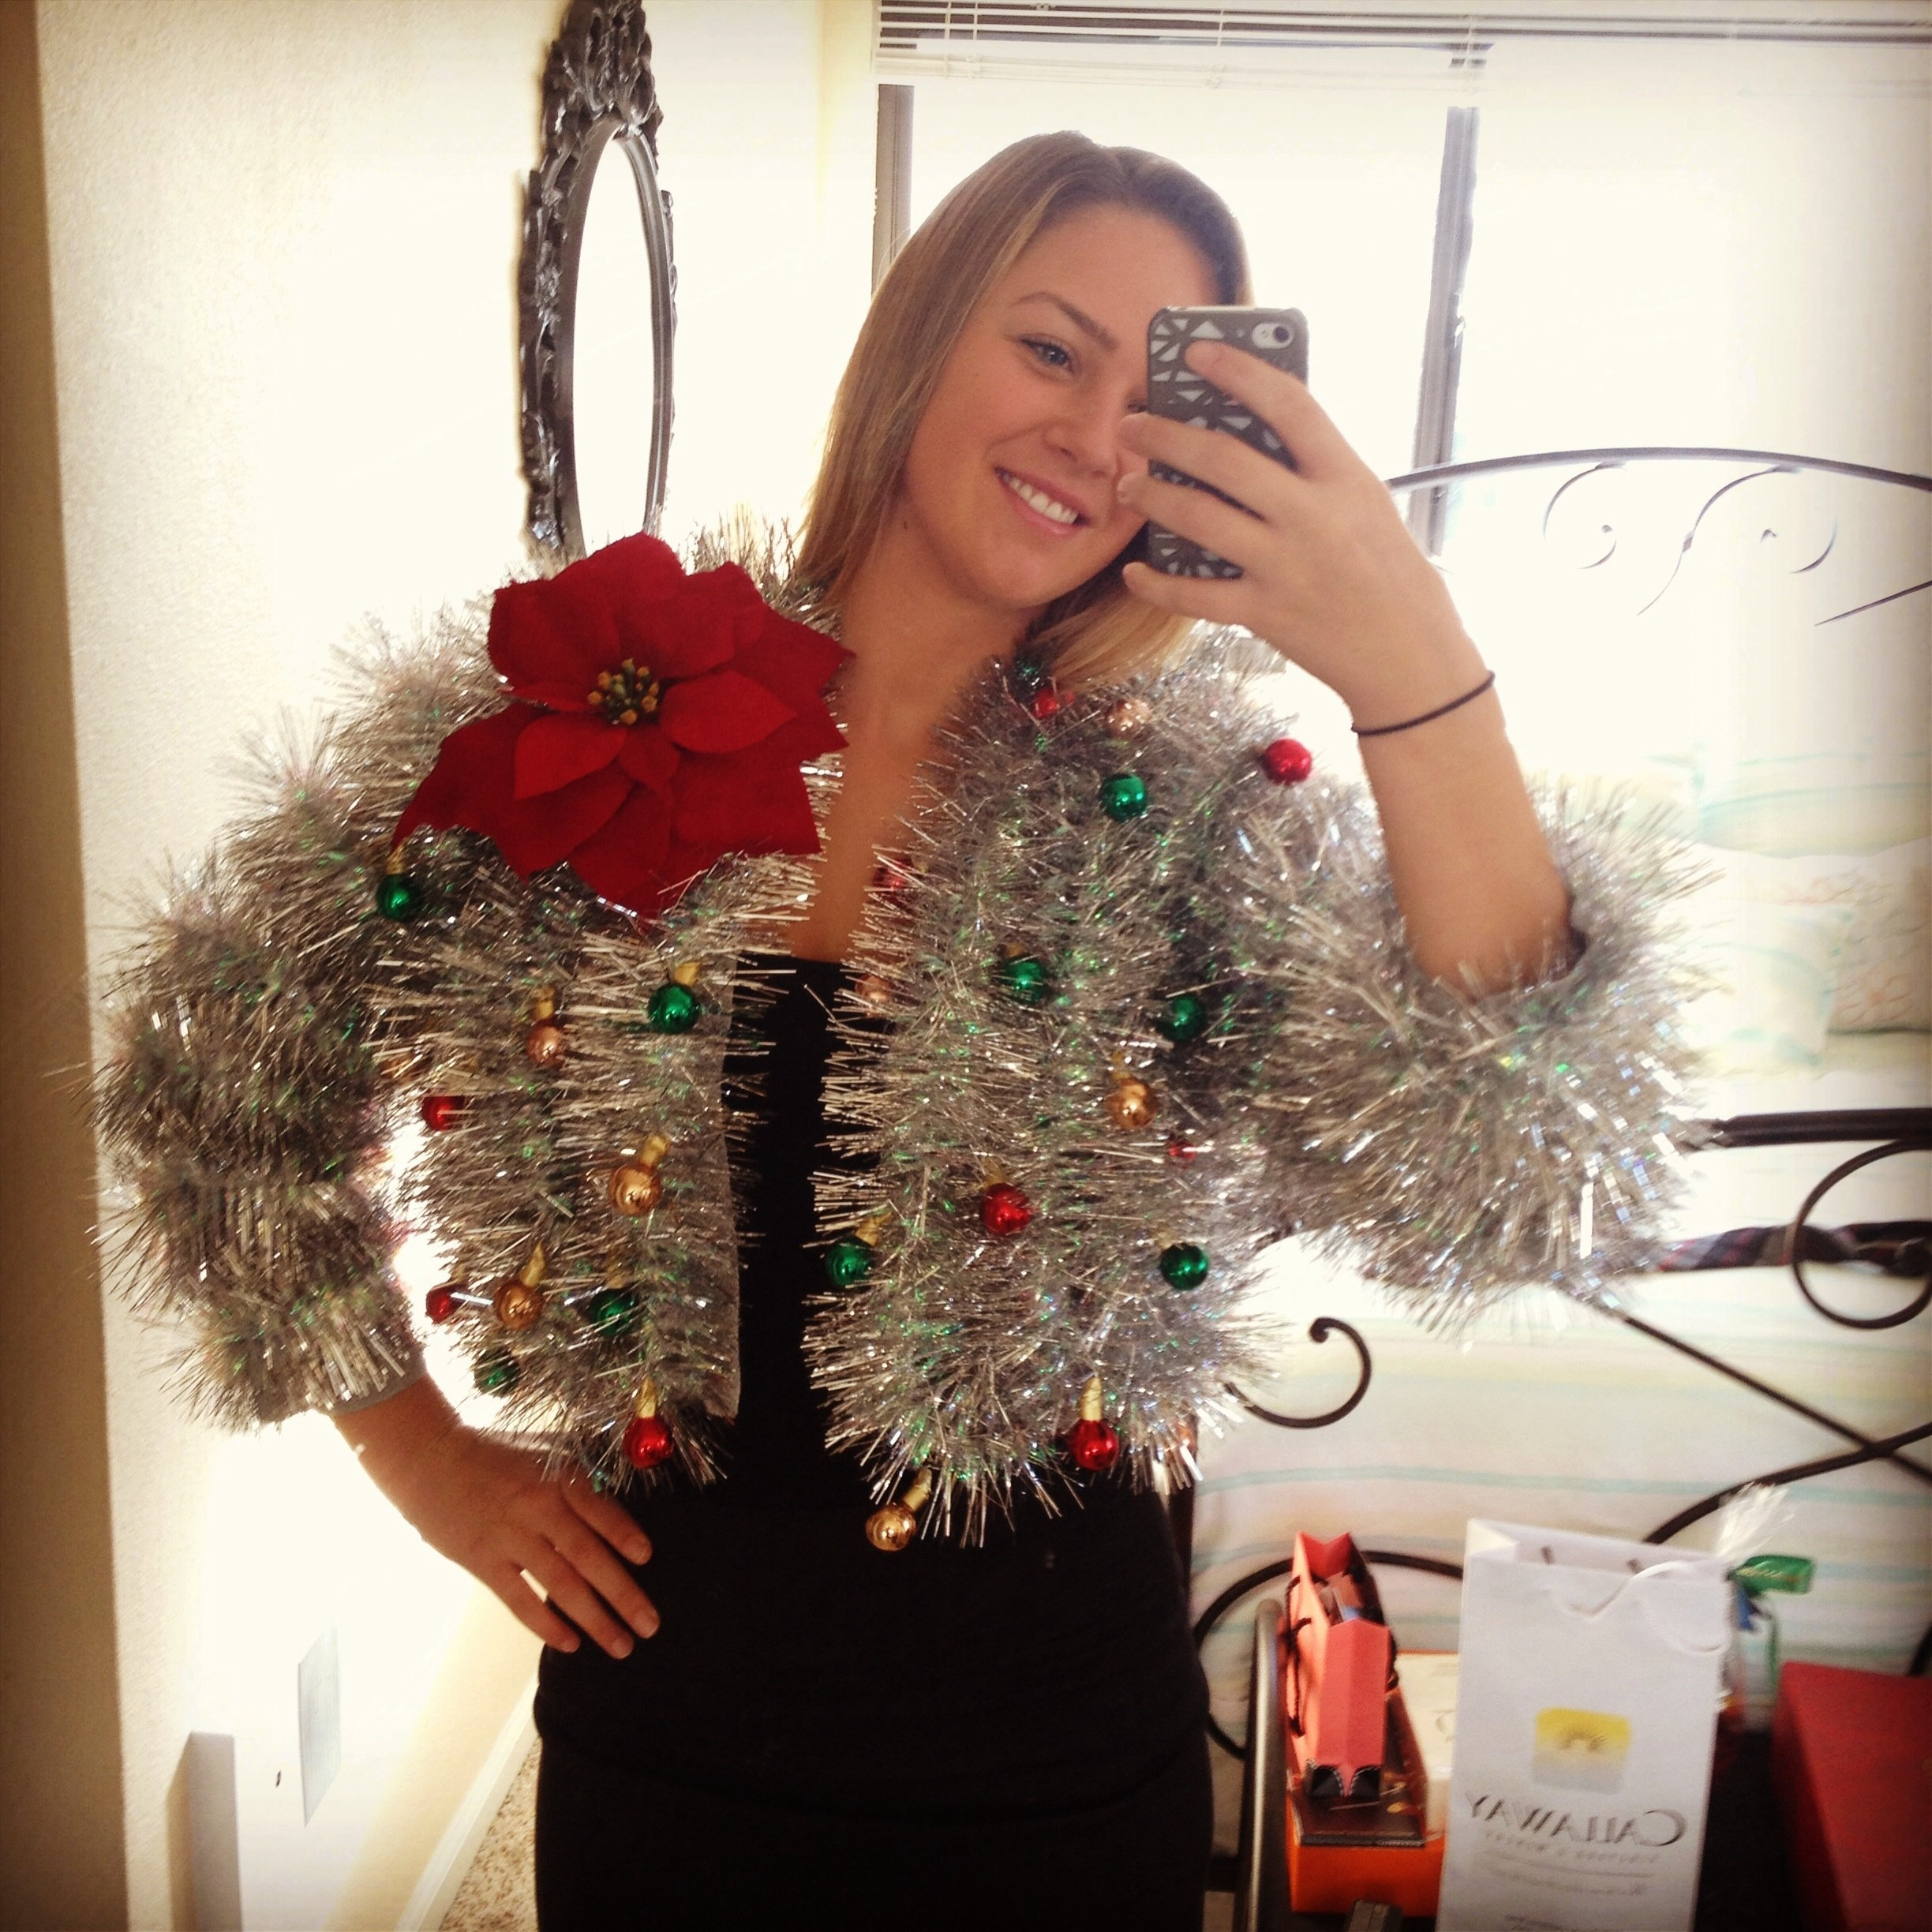 10 Stunning Ugly Christmas Sweater Ideas Homemade eye catching attractive handmade ugly sweater ideas for the theme